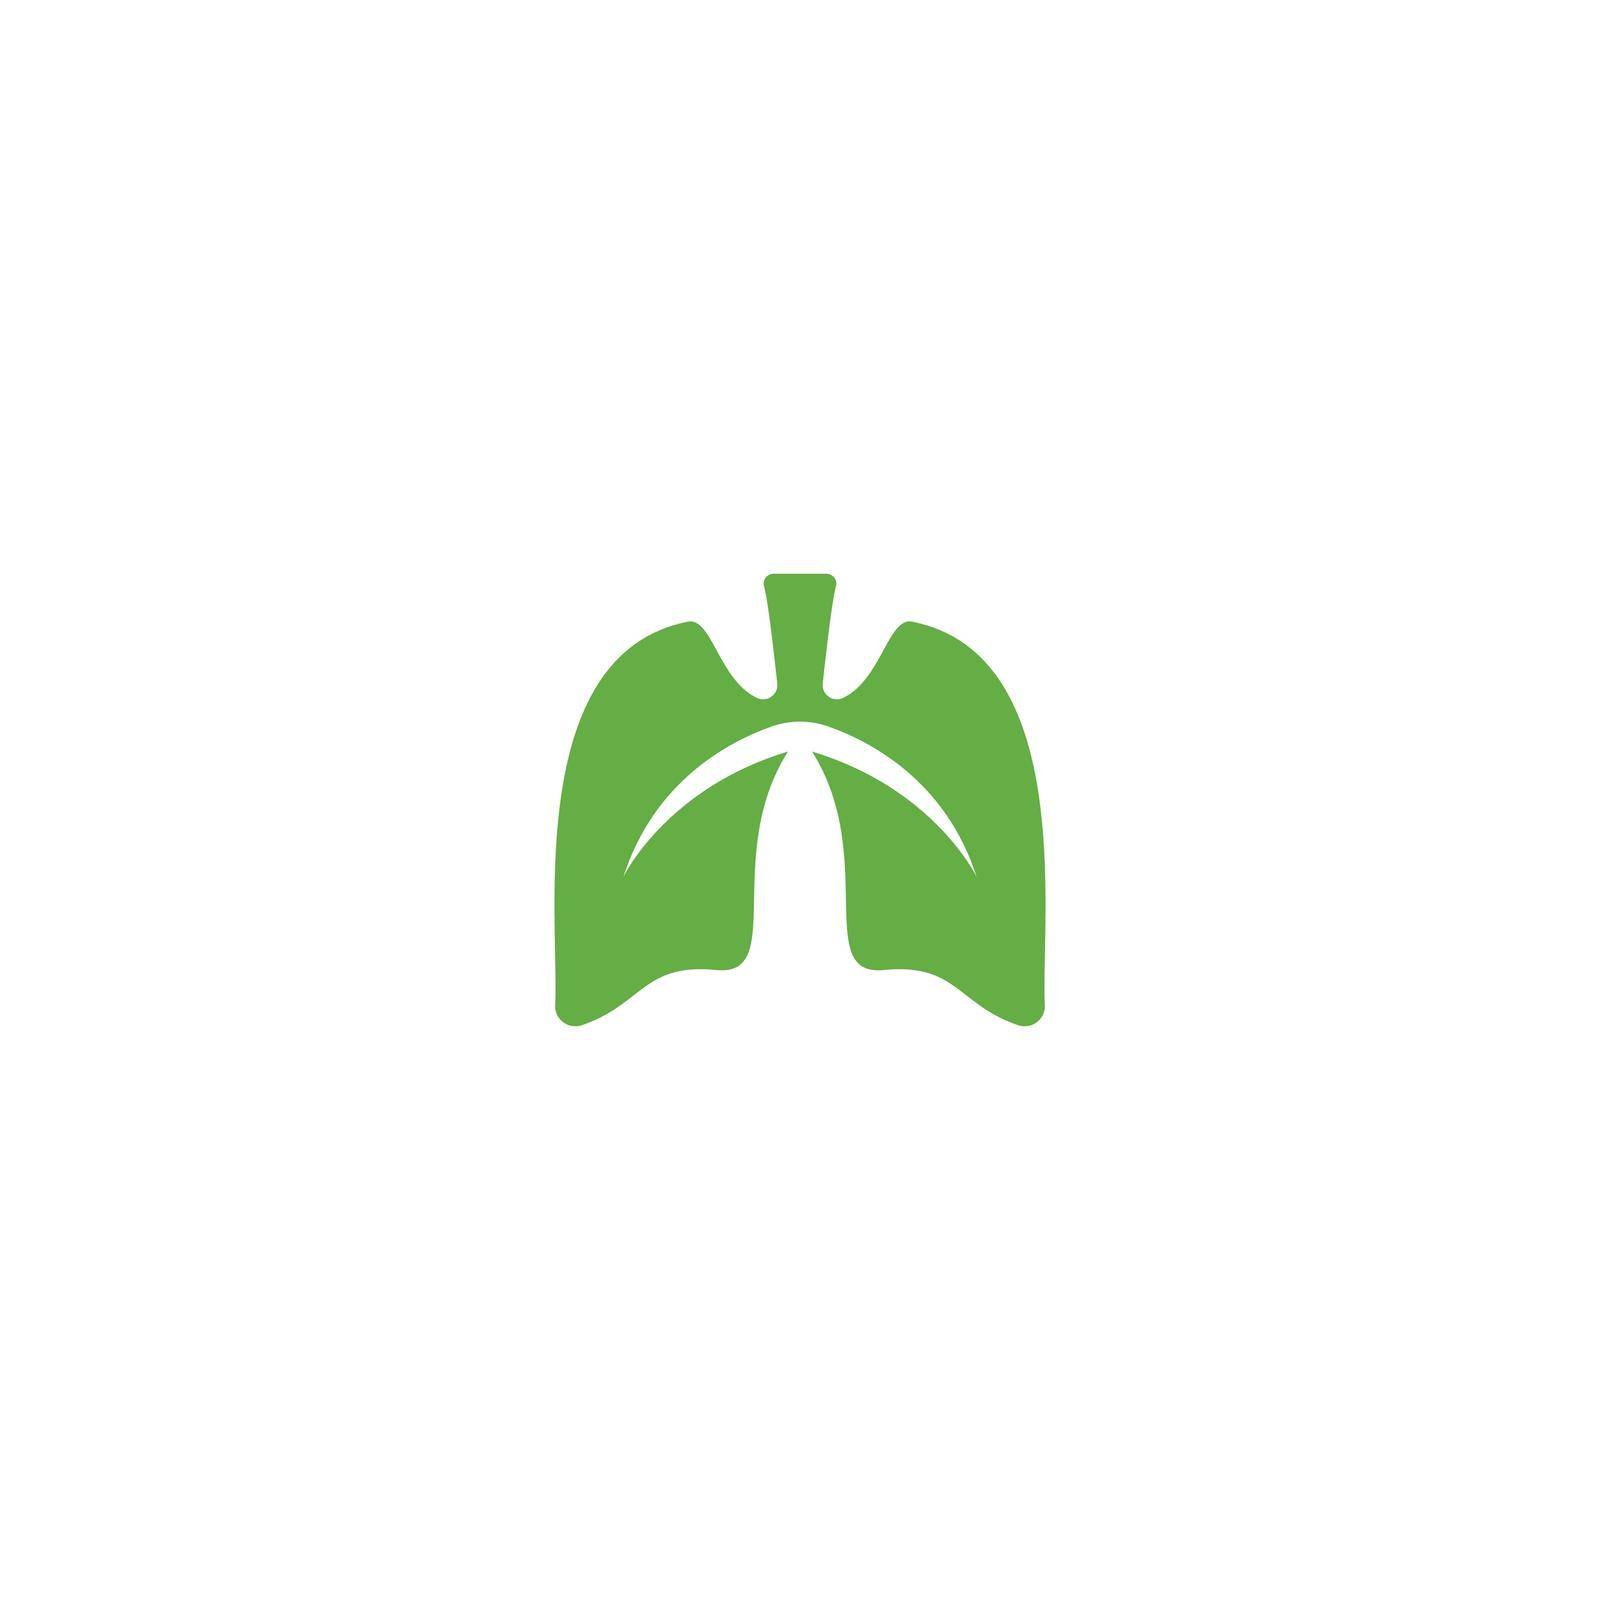 Lungs illustration vector template design